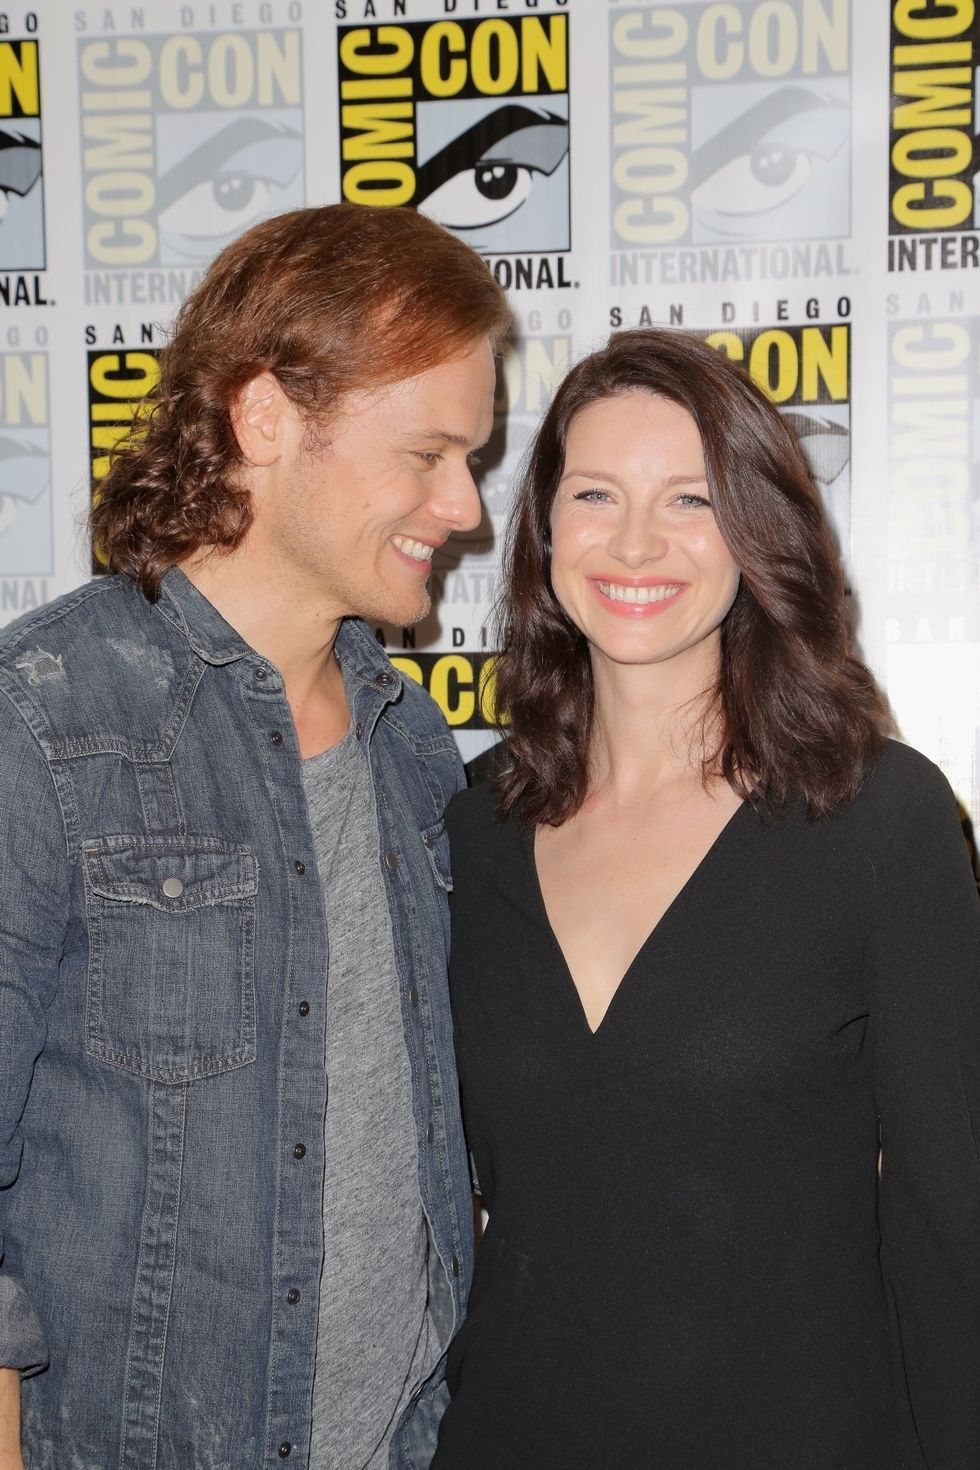 Are the outlander actors dating